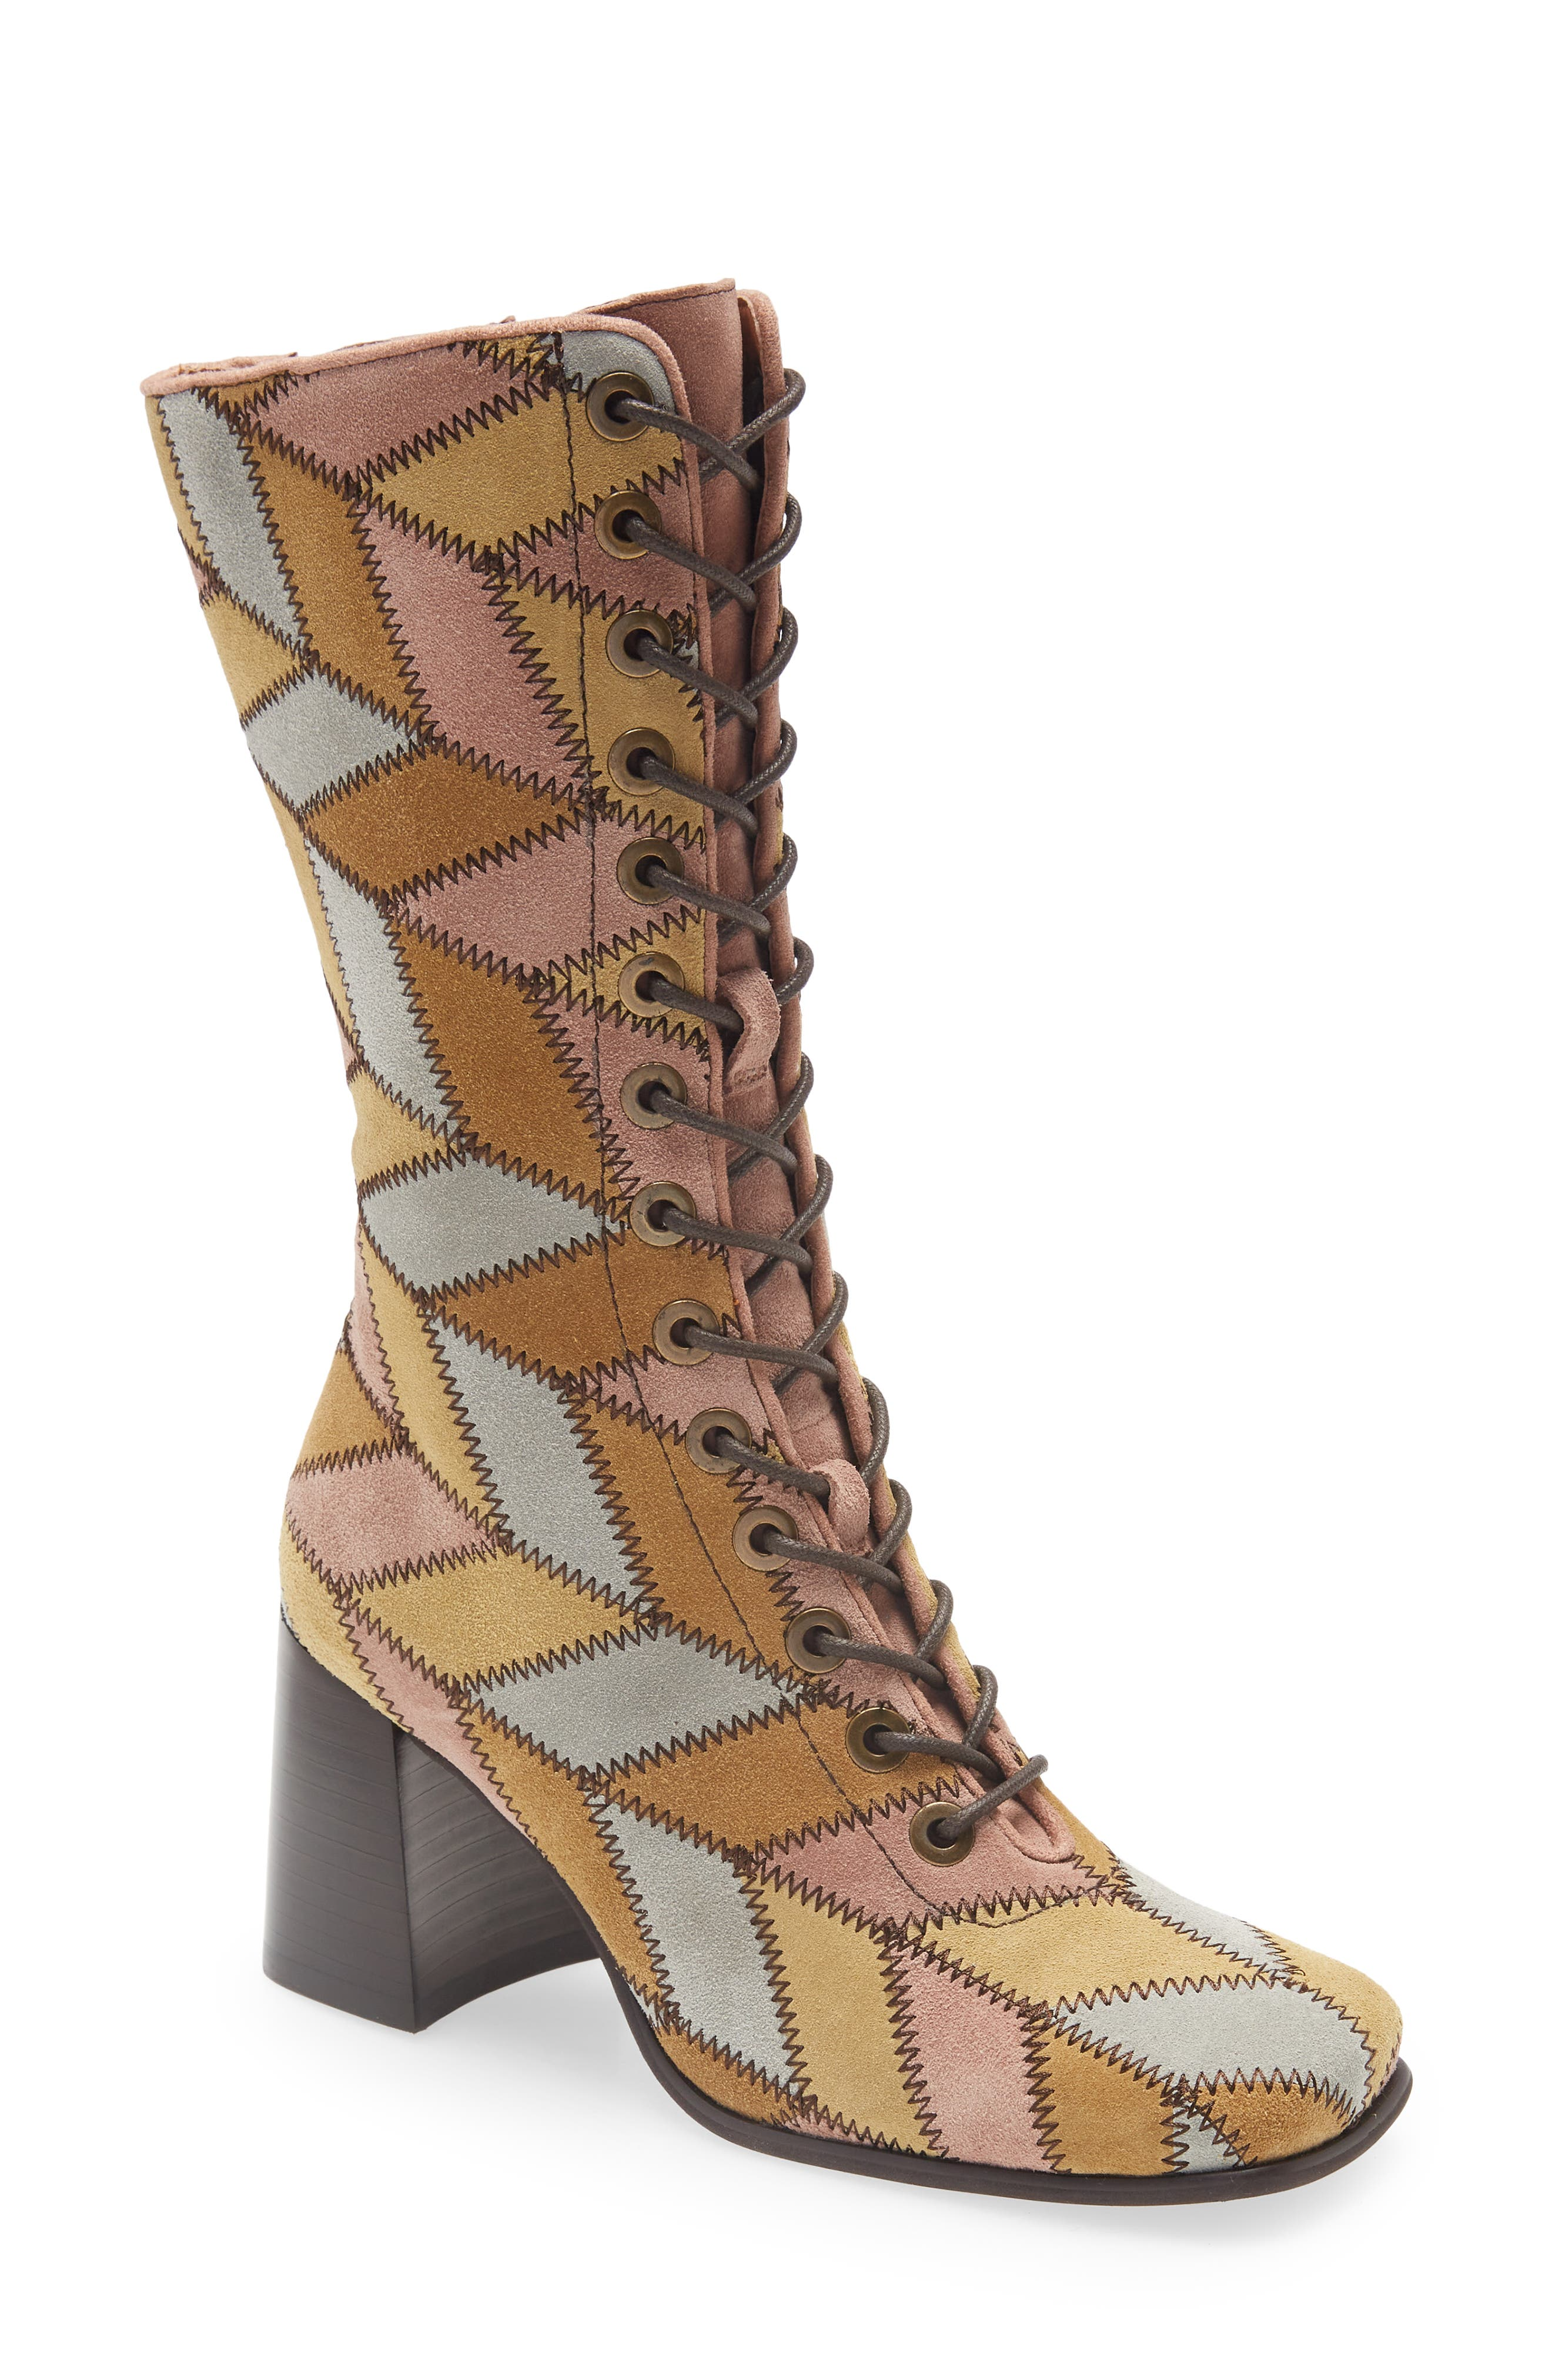 70s Clothes | Hippie Clothes & Outfits Jeffrey Campbell Hunts Lace-Up Boot Size 8.5 in Light Suede Multi at Nordstrom $349.95 AT vintagedancer.com